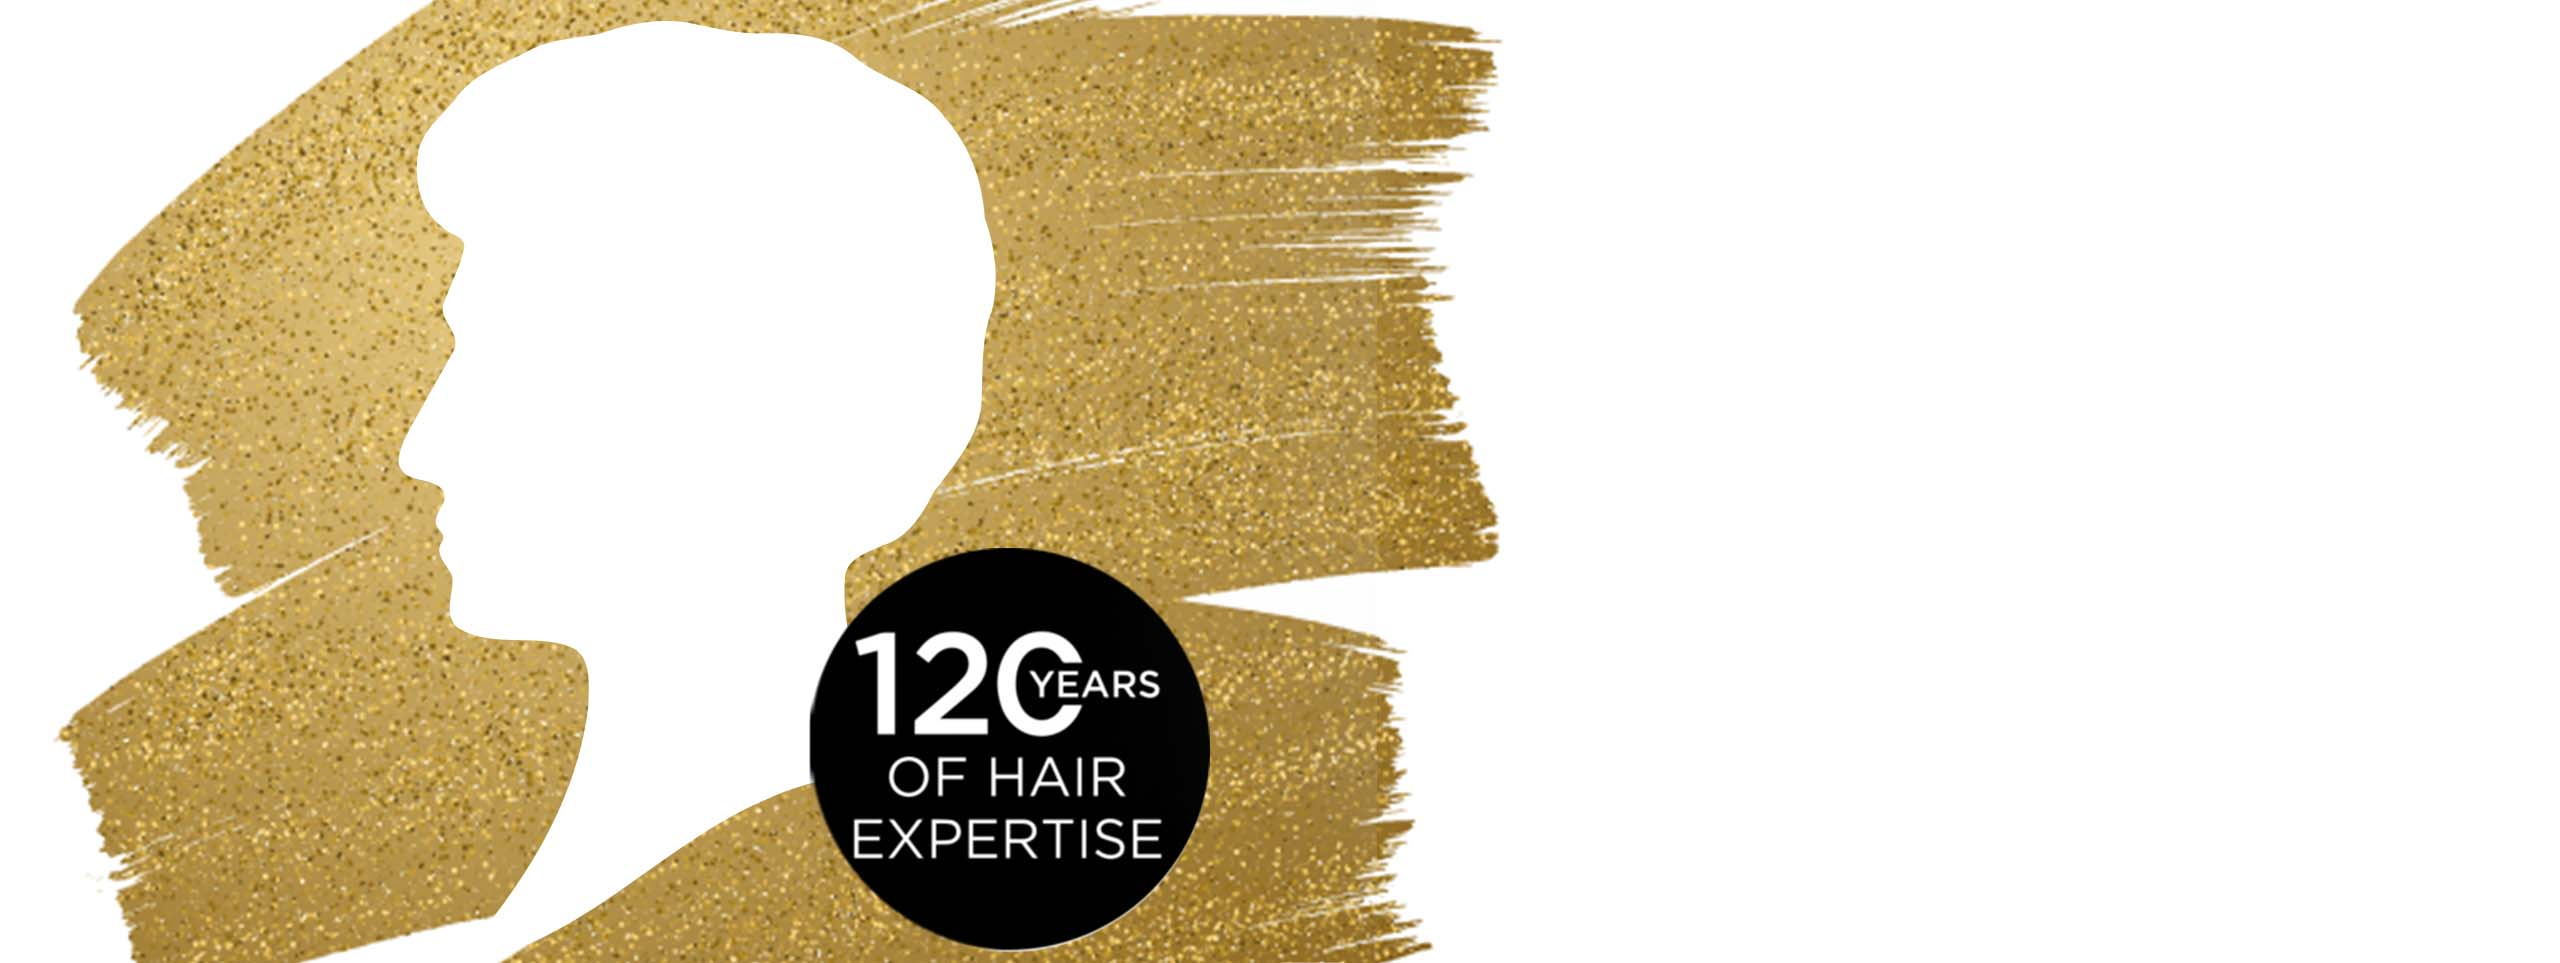 120th anniversary of Schwarzkopf.